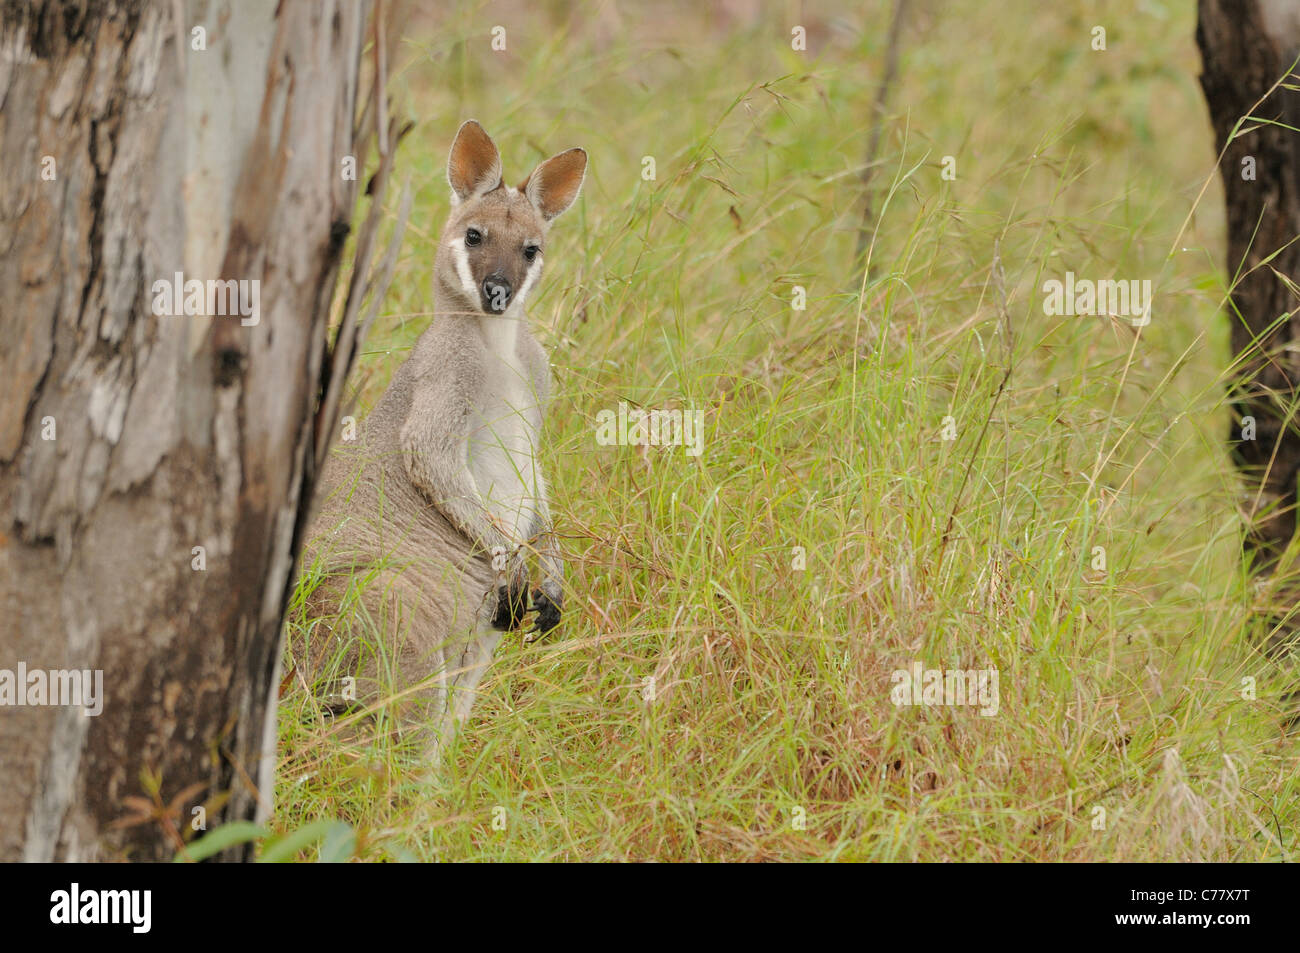 Whiptail Wallaby OR Pretty-faced Wallaby Macropus parryi Photographed in Queensland, Australia - Stock Image